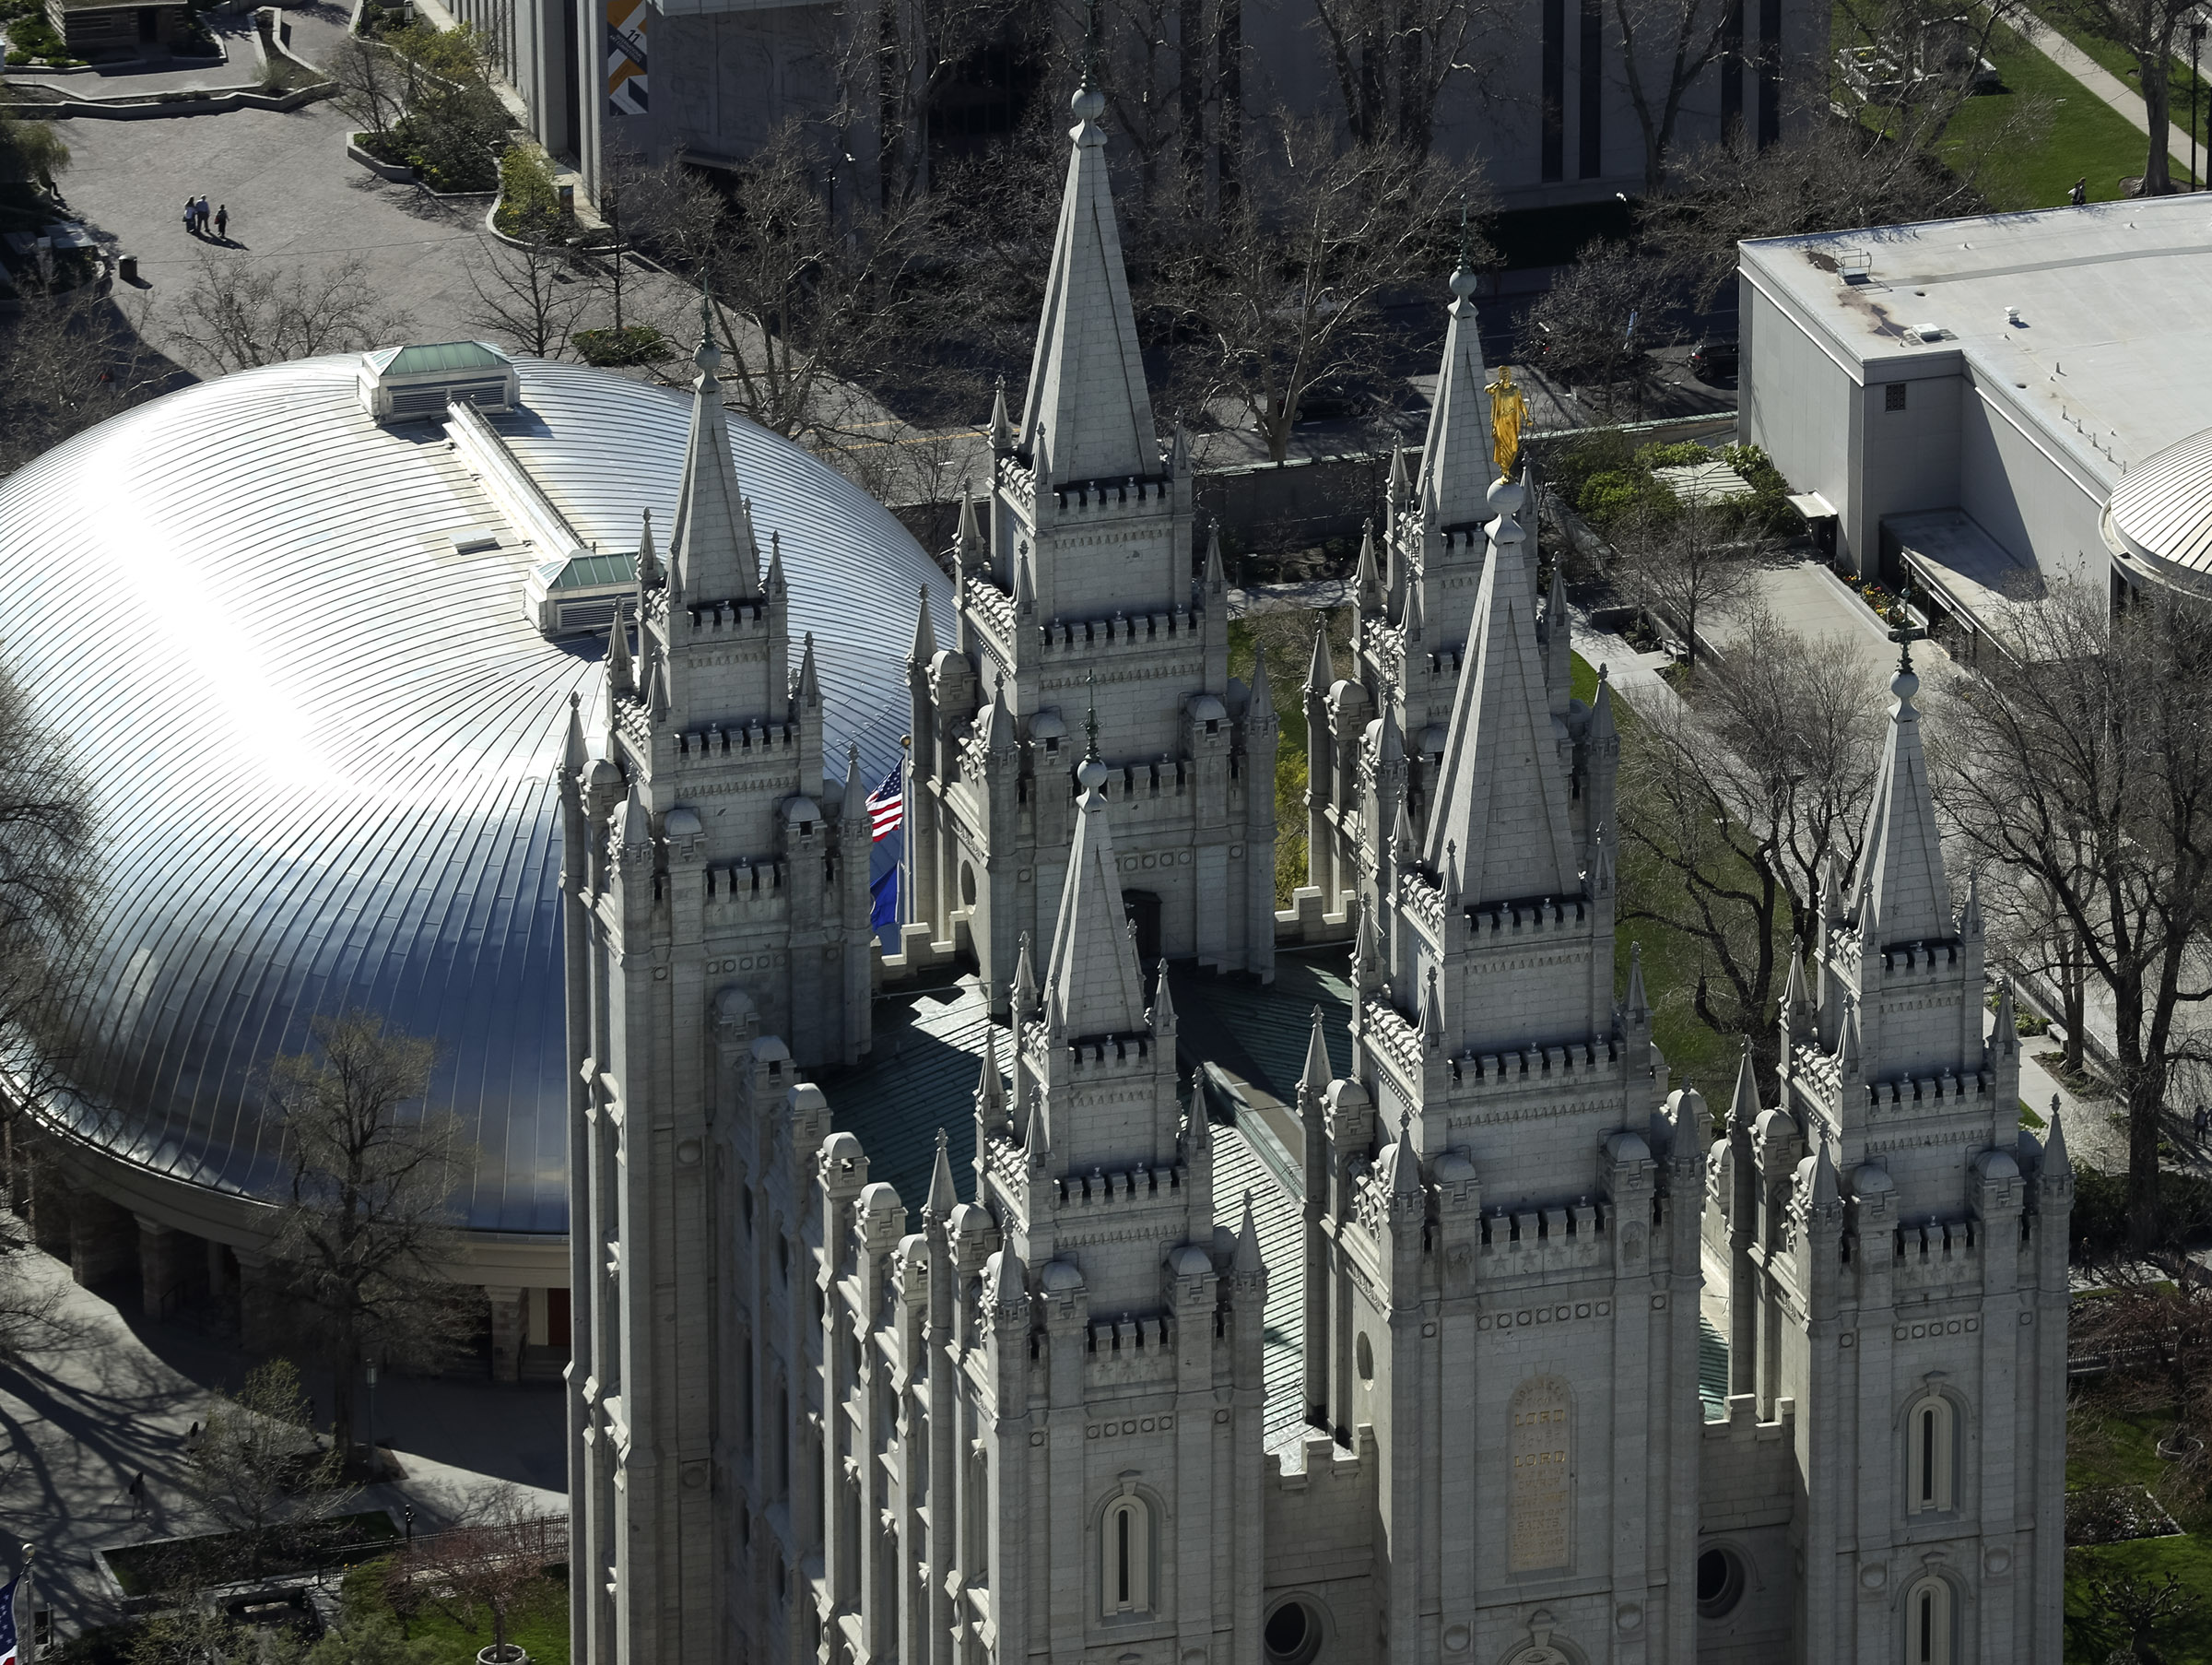 The Salt Lake Temple on Thursday, April 18, 2019. Leaders of The Church of Jesus Christ of Latter-day Saints discontinued a policy Monday morning, May 6, requiring couples who marry civilly to wait one year before being sealed in the temple.